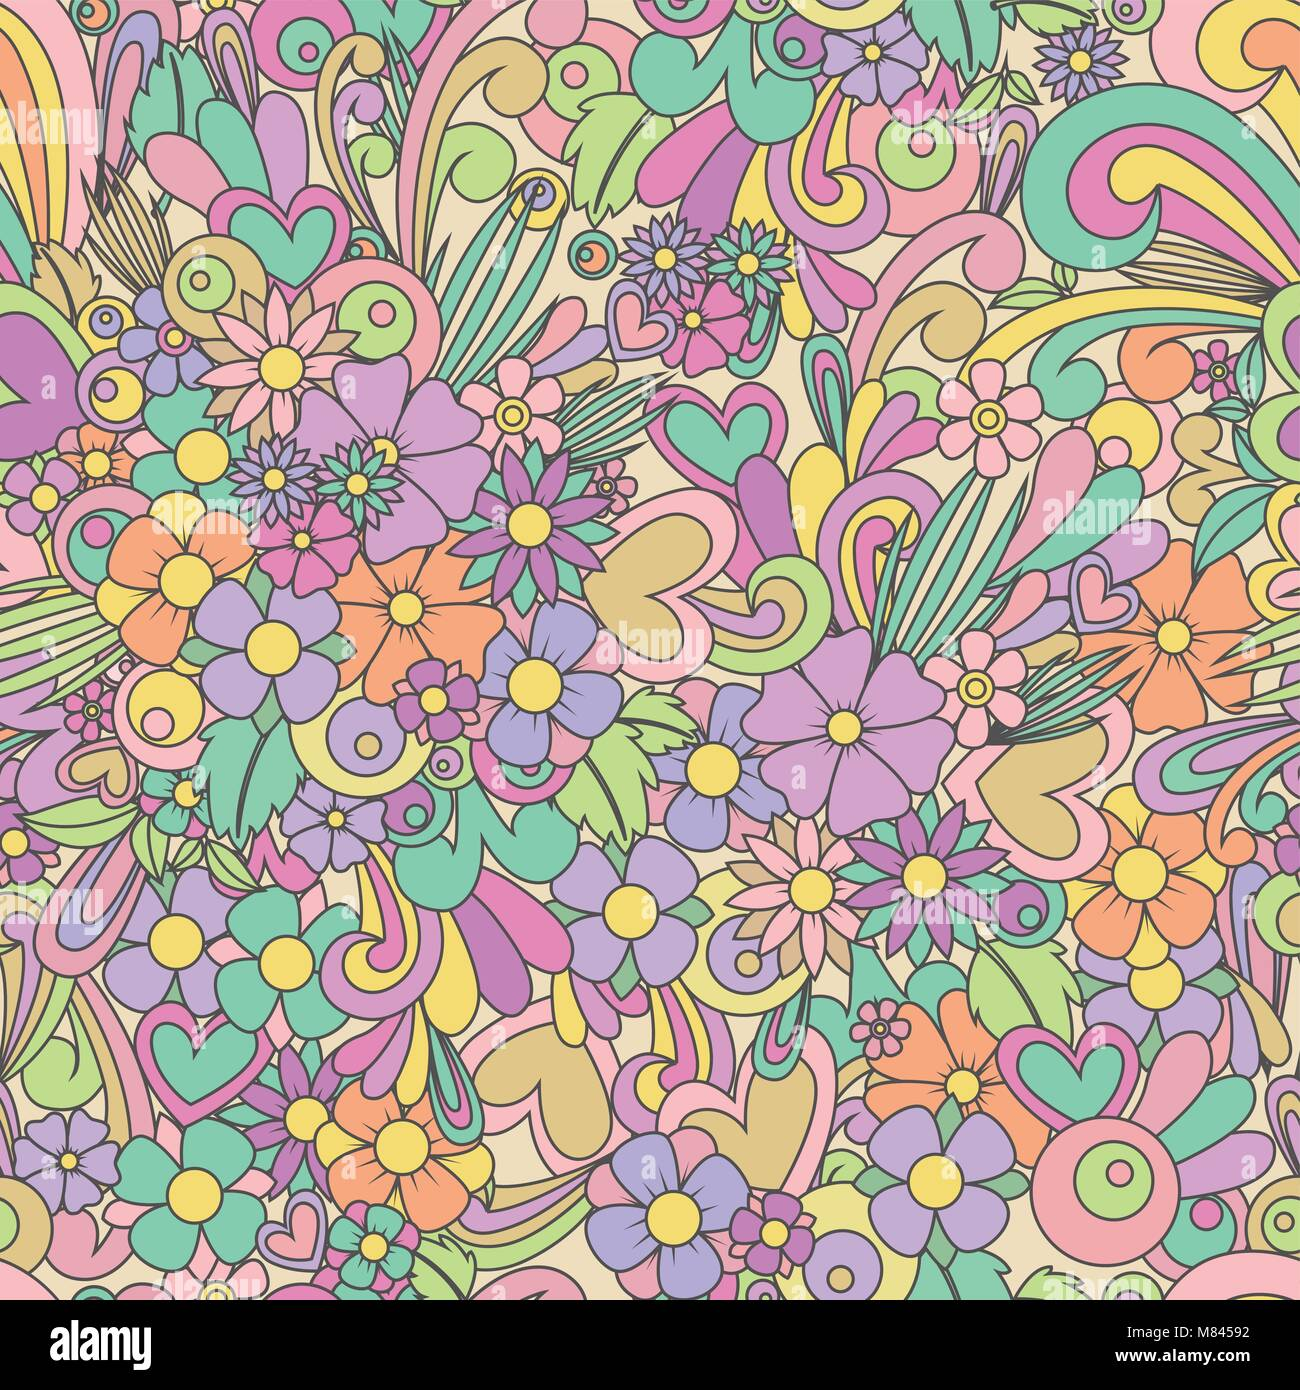 Wallpaper with zentangle flowers and hearts. Floral vector seamless pattern backgrouns. Zen tangle and doodle.